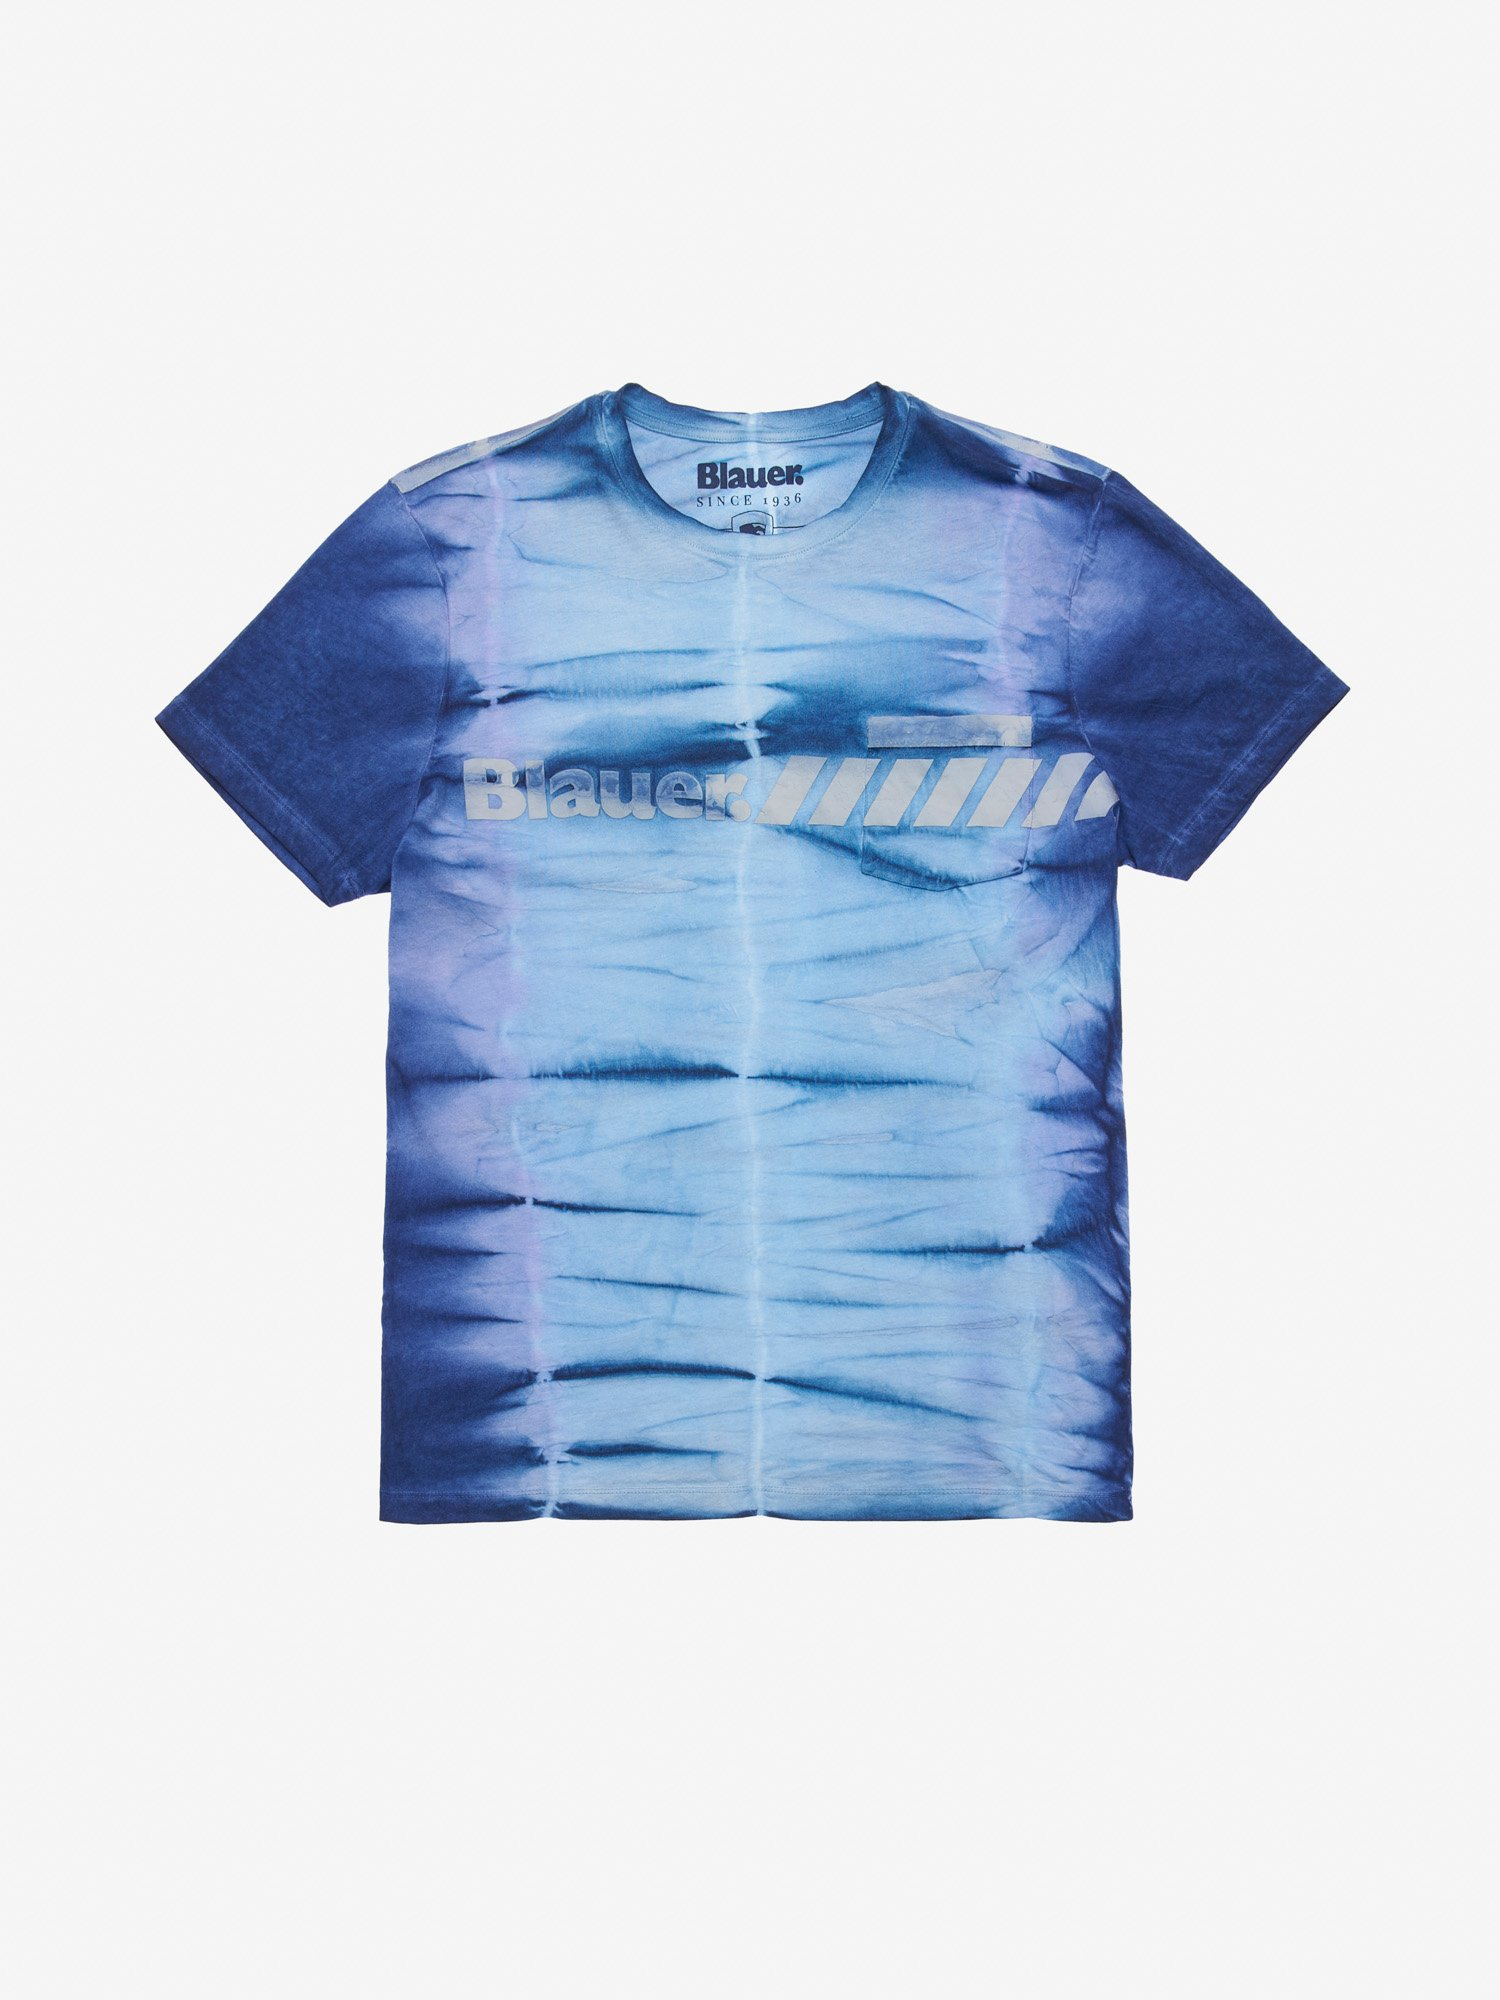 MEN'S TIE DYE T-SHIRT - Blauer